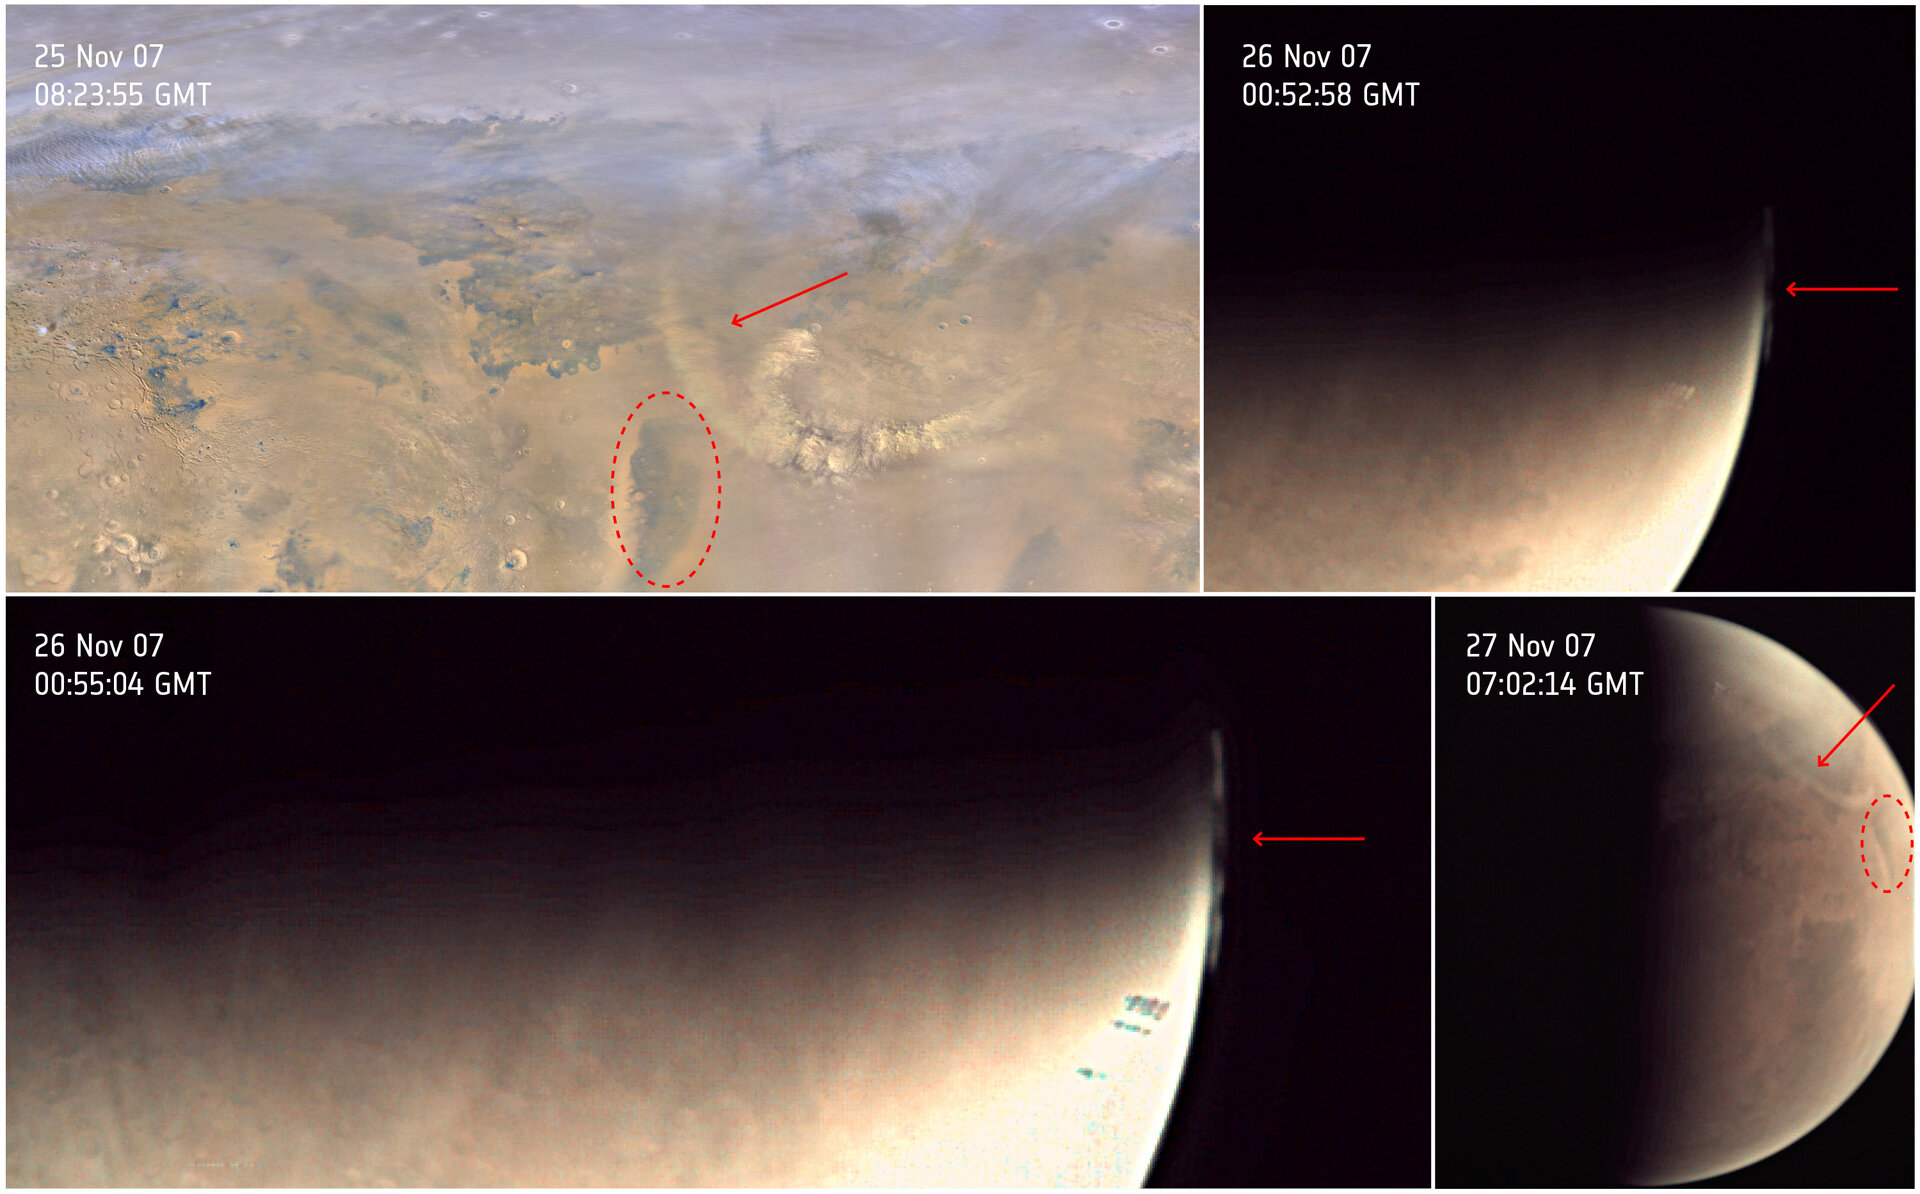 Dust clouds over Mars